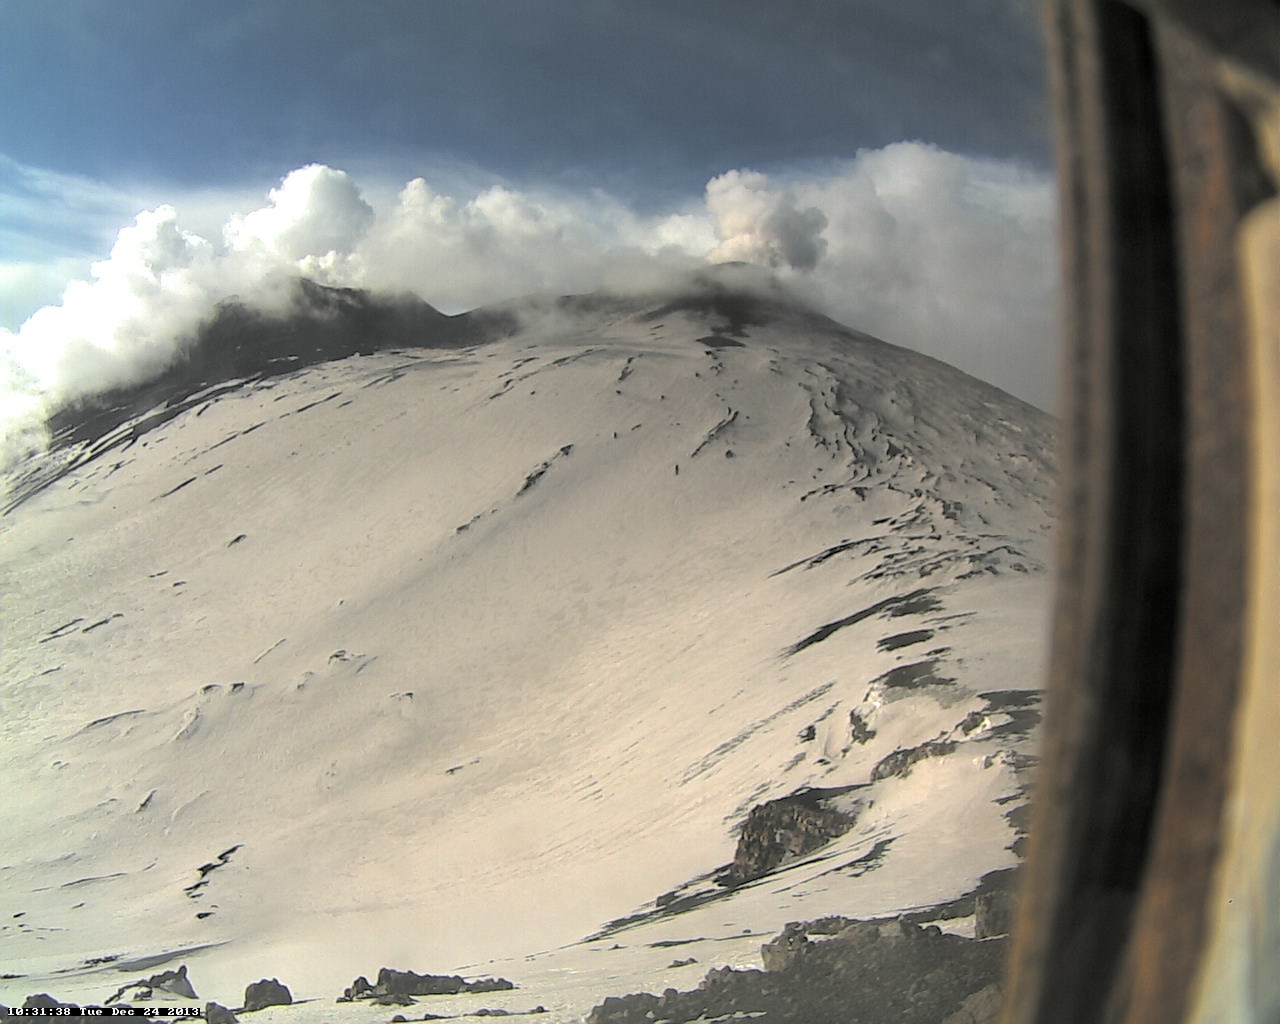 Steaming of the NE and Bocca Nova crater (Pizzo Deneri Etna Trekking webcam)